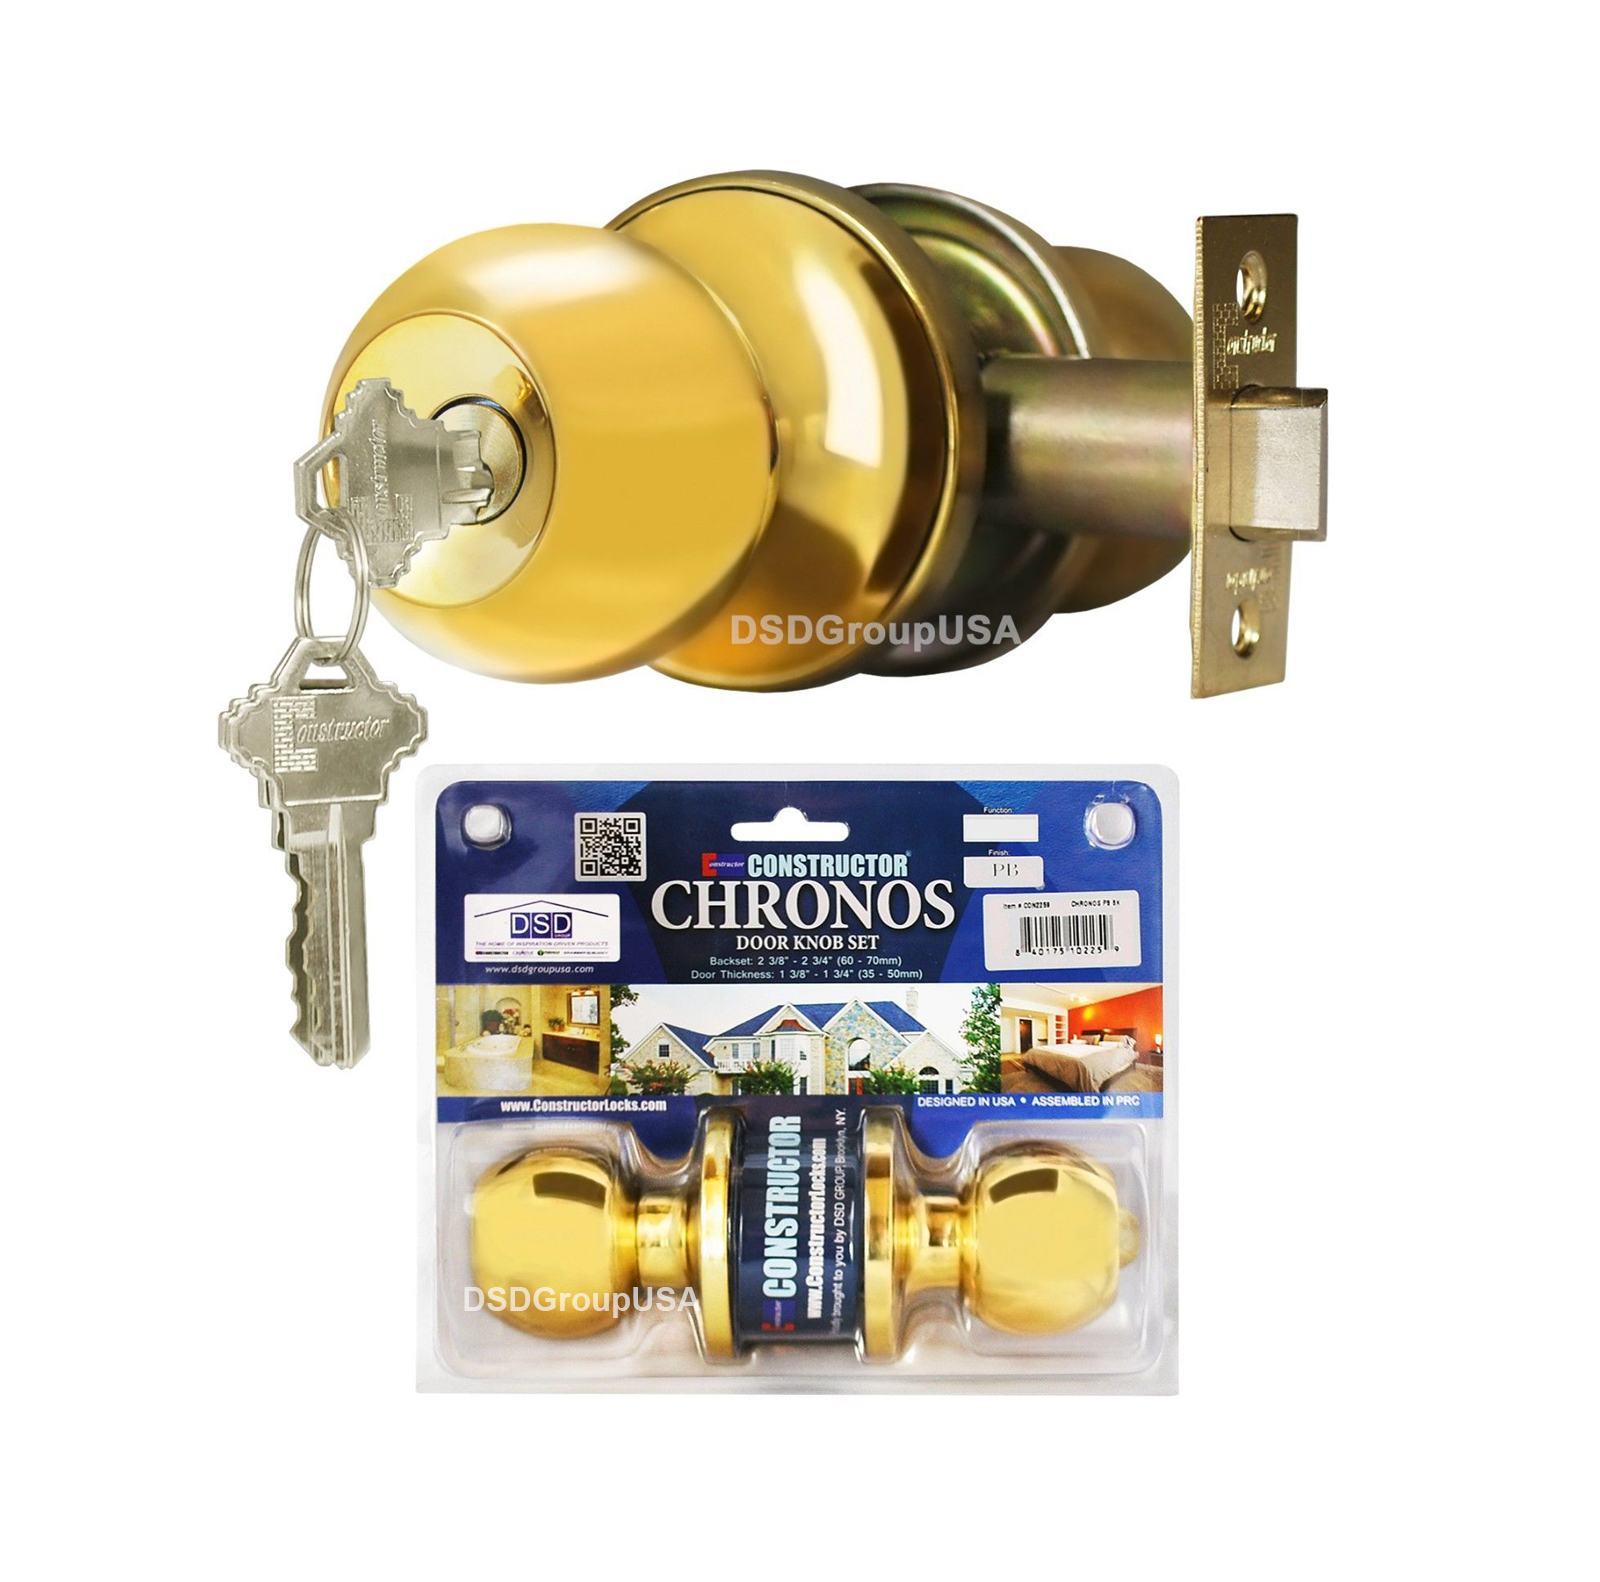 Constructor Chronos Entry Door Knob Handle Lock Set Polished Brass Finish